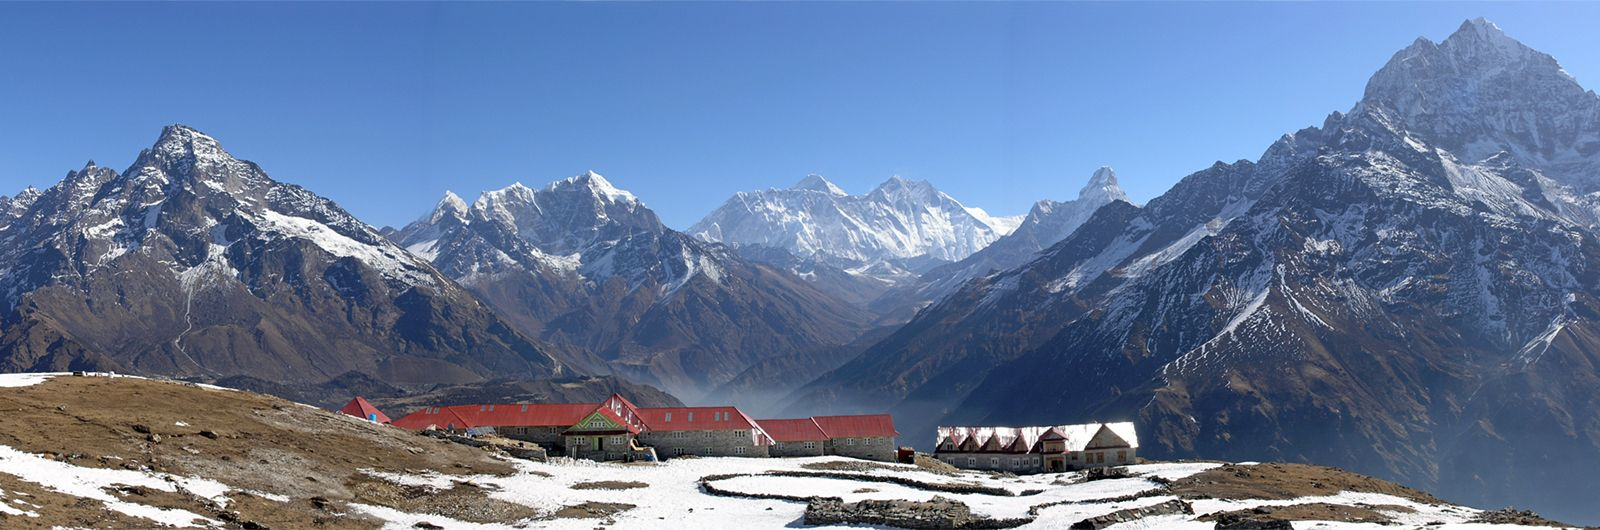 Trek Everest C. Base por Gokyo